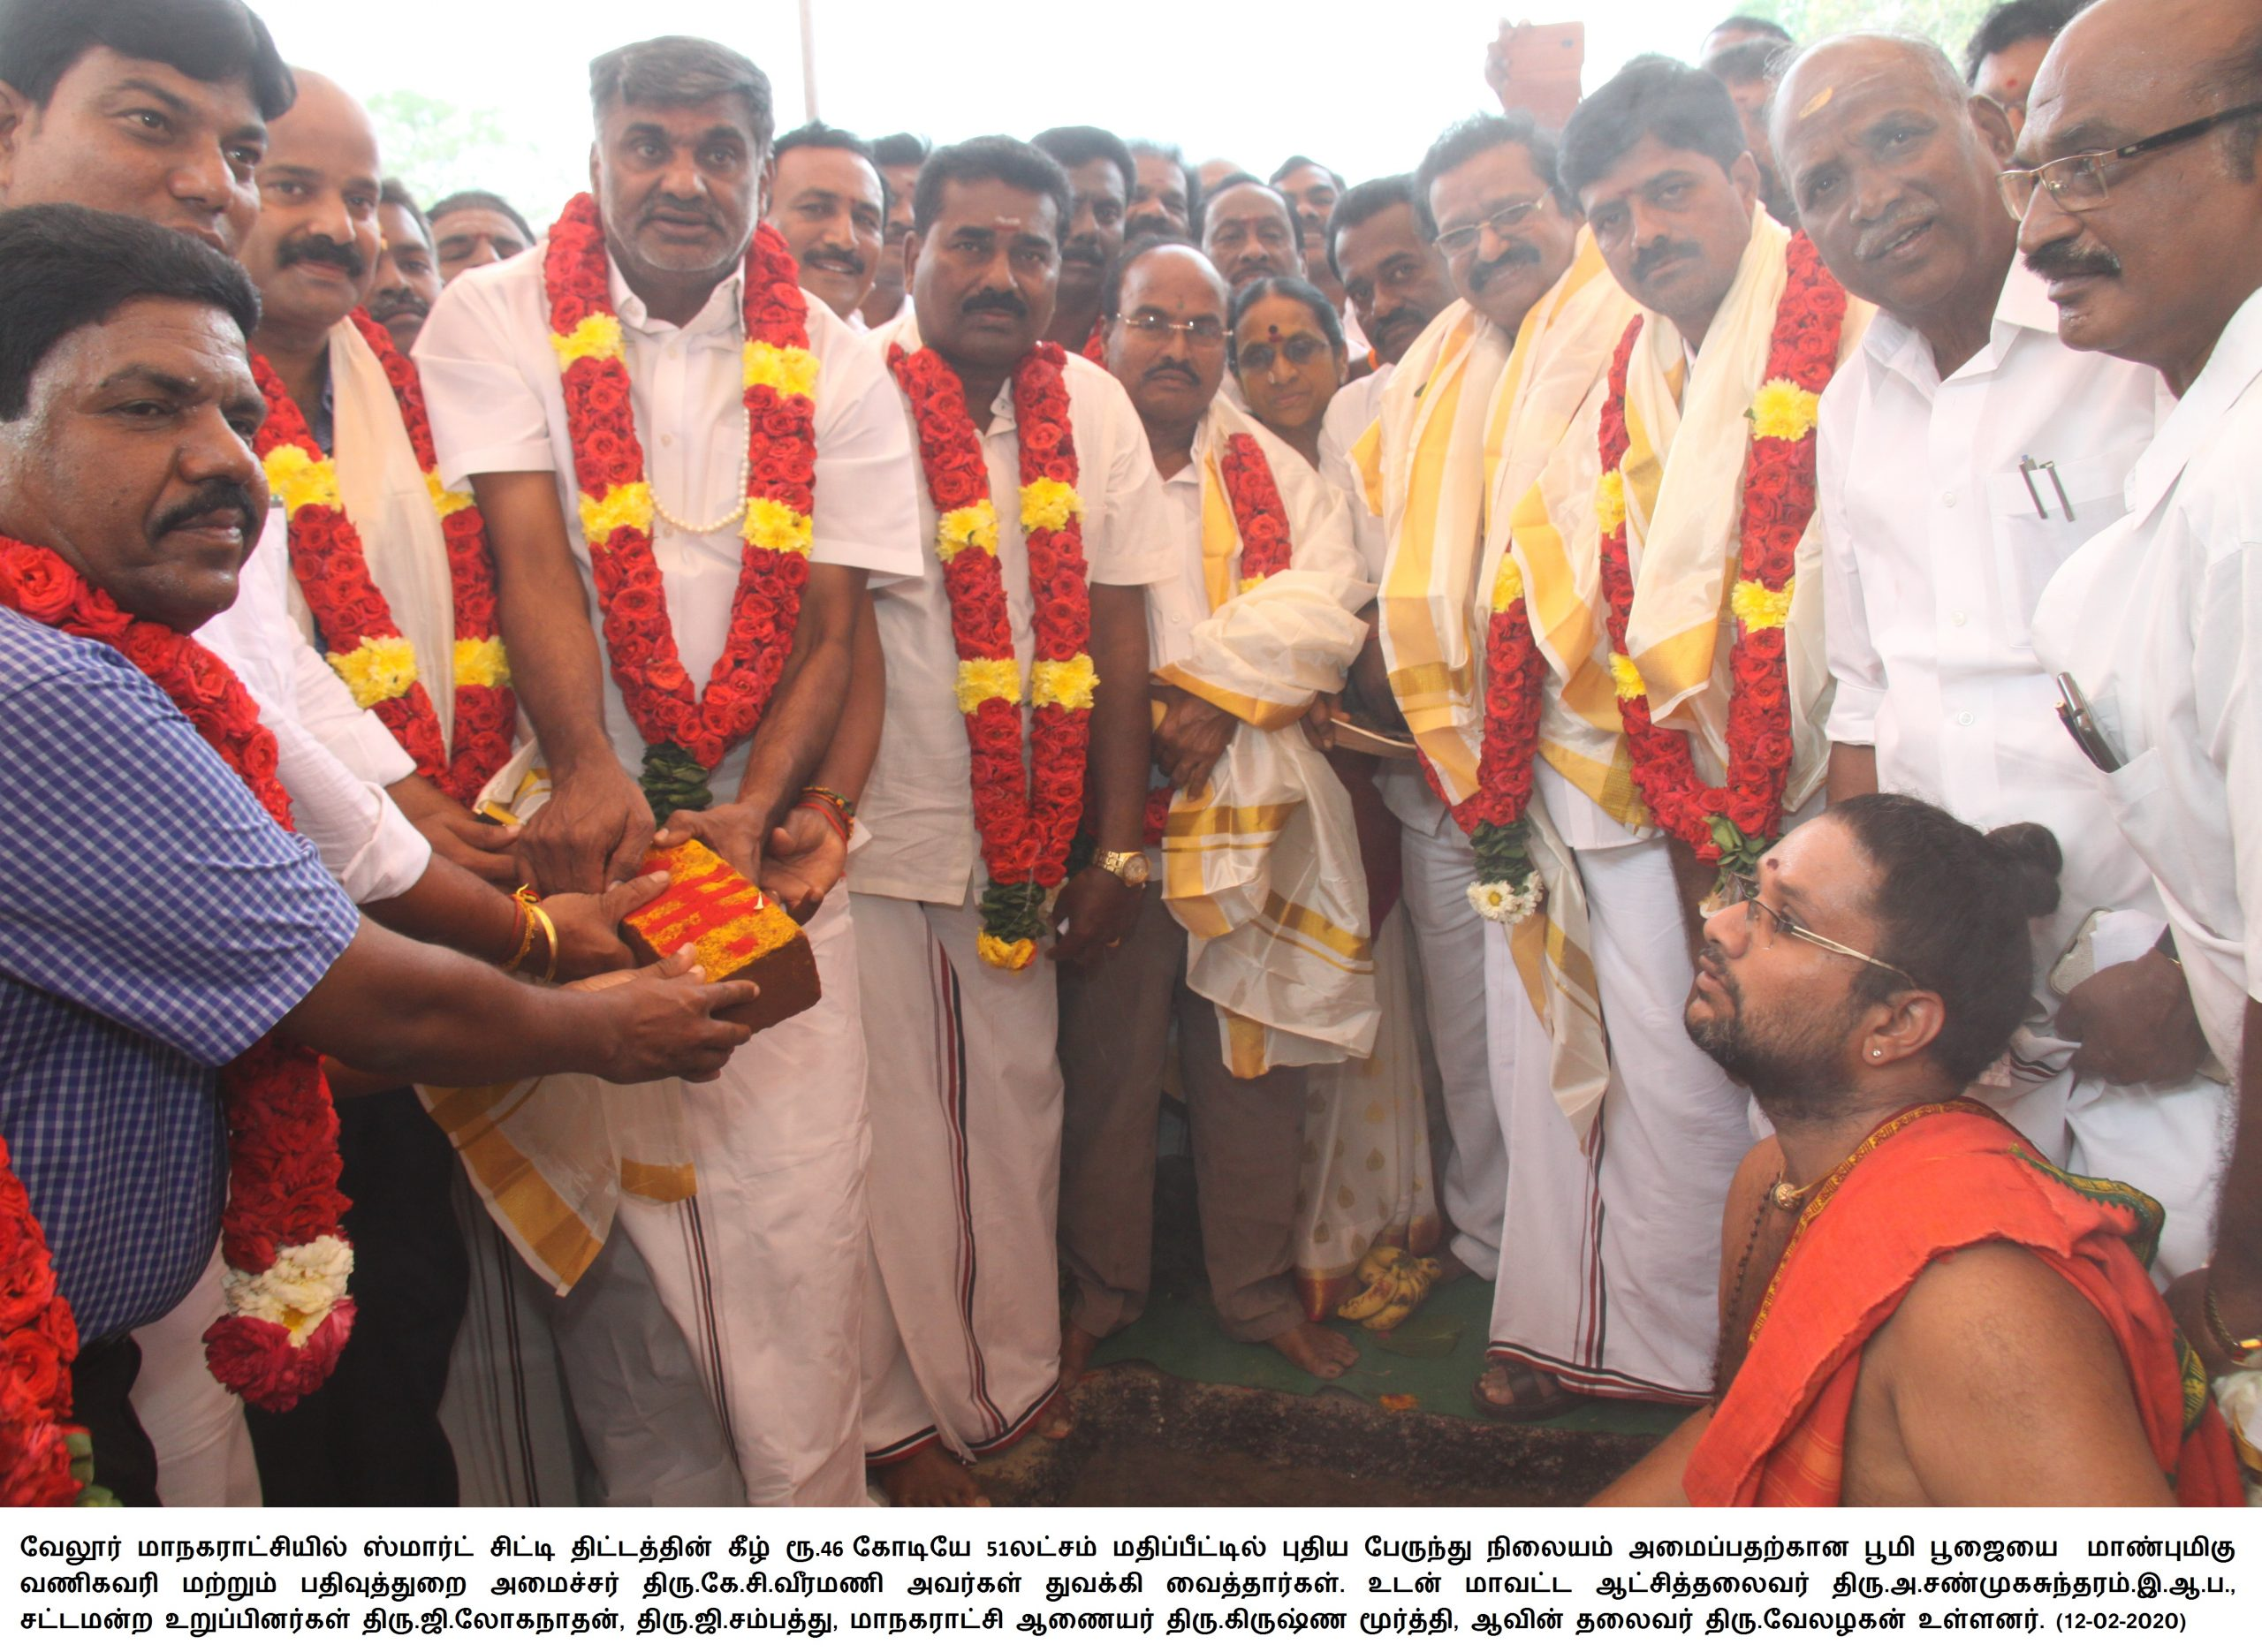 Honorable Commercial Tax and Registration Department Minister K.C.Veeramani Inaugurated Bhoomi Pooja for Vellore New Bus Stand